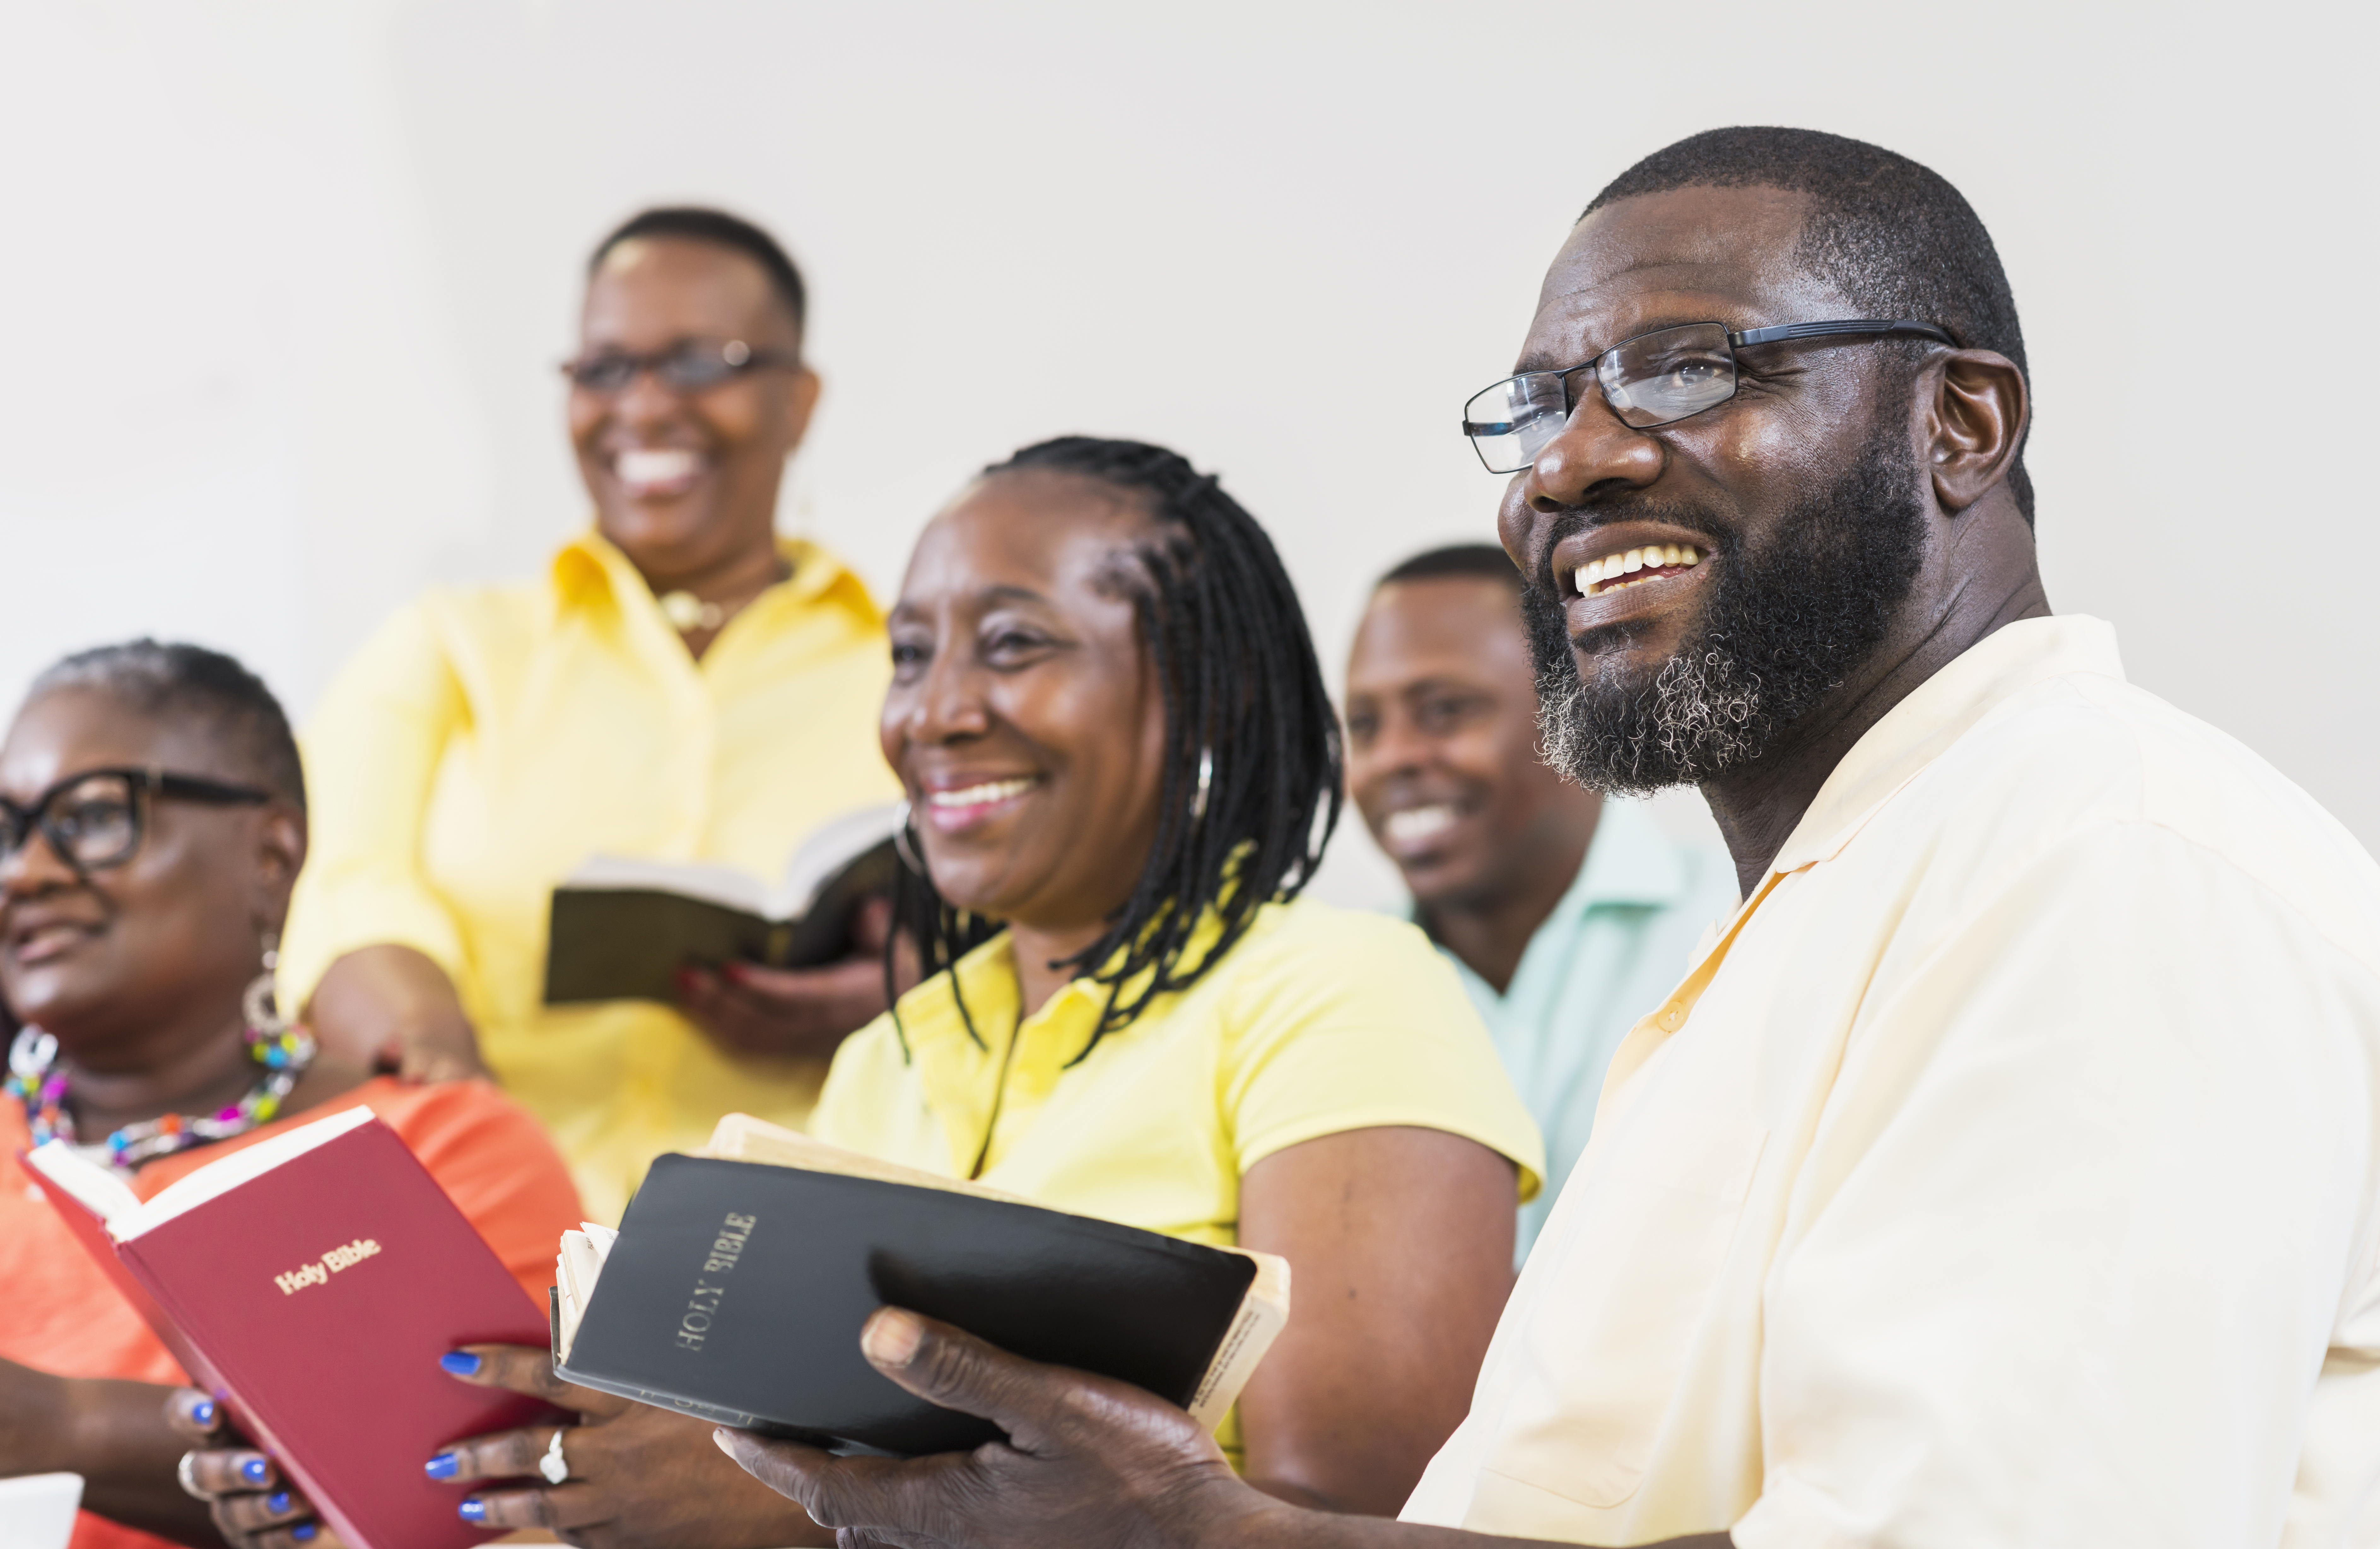 Group Of Mature Black Men And Women Holding Bibles